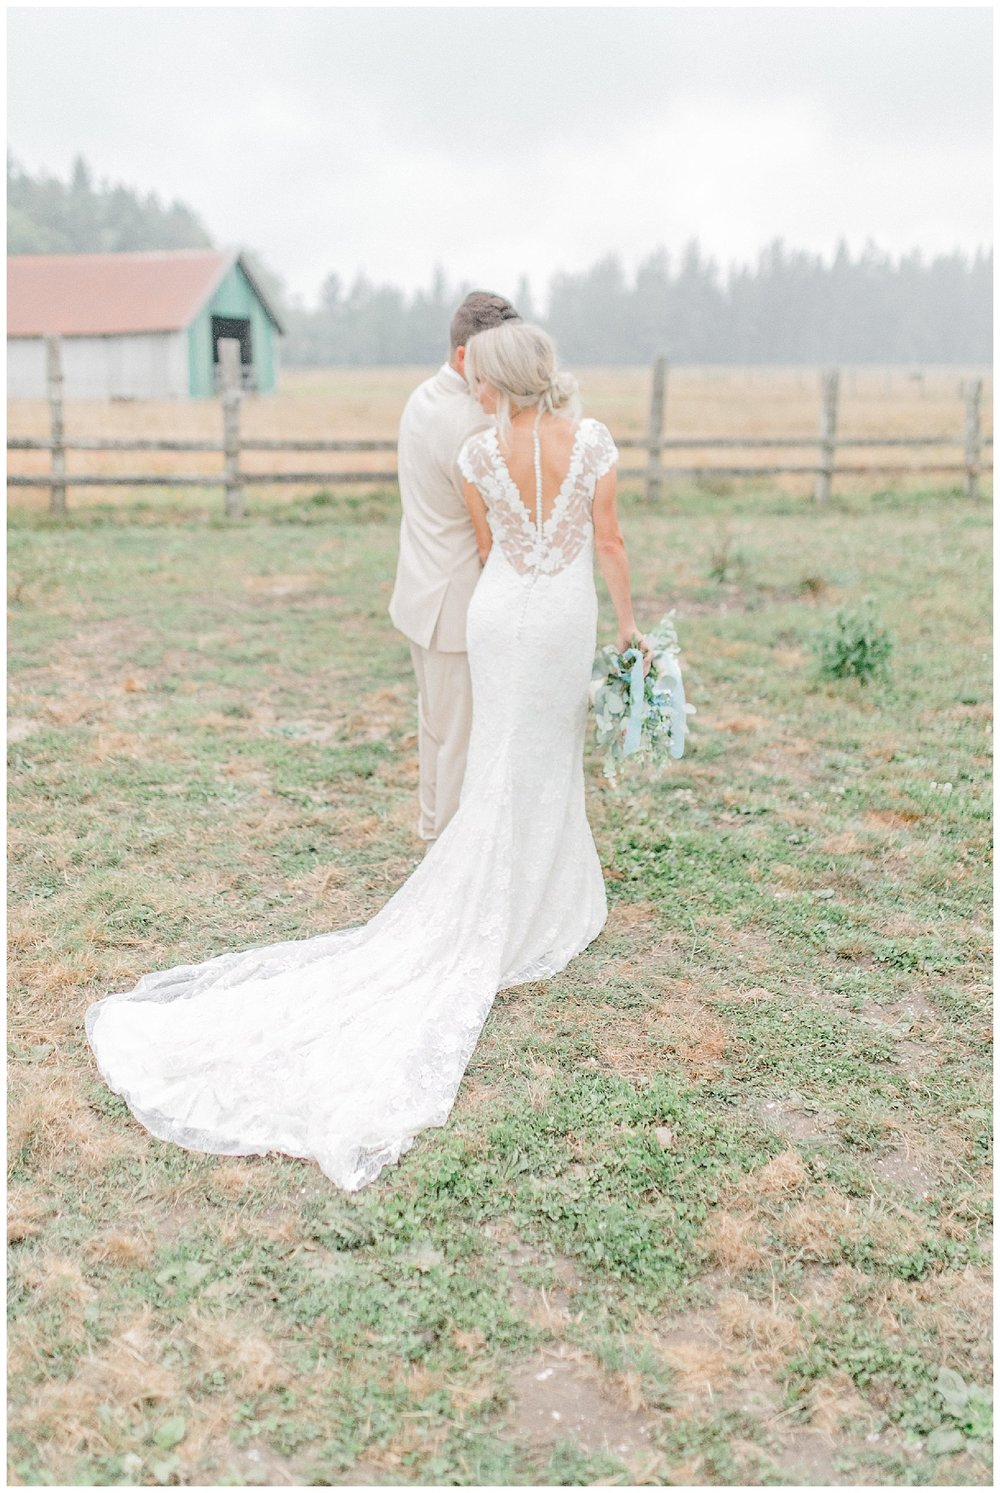 Emma Rose Company Dream Chasers Workshop and Education for Photographer | Light and Airy Rose Ranch Dream Barn Venue Wedding_0037.jpg